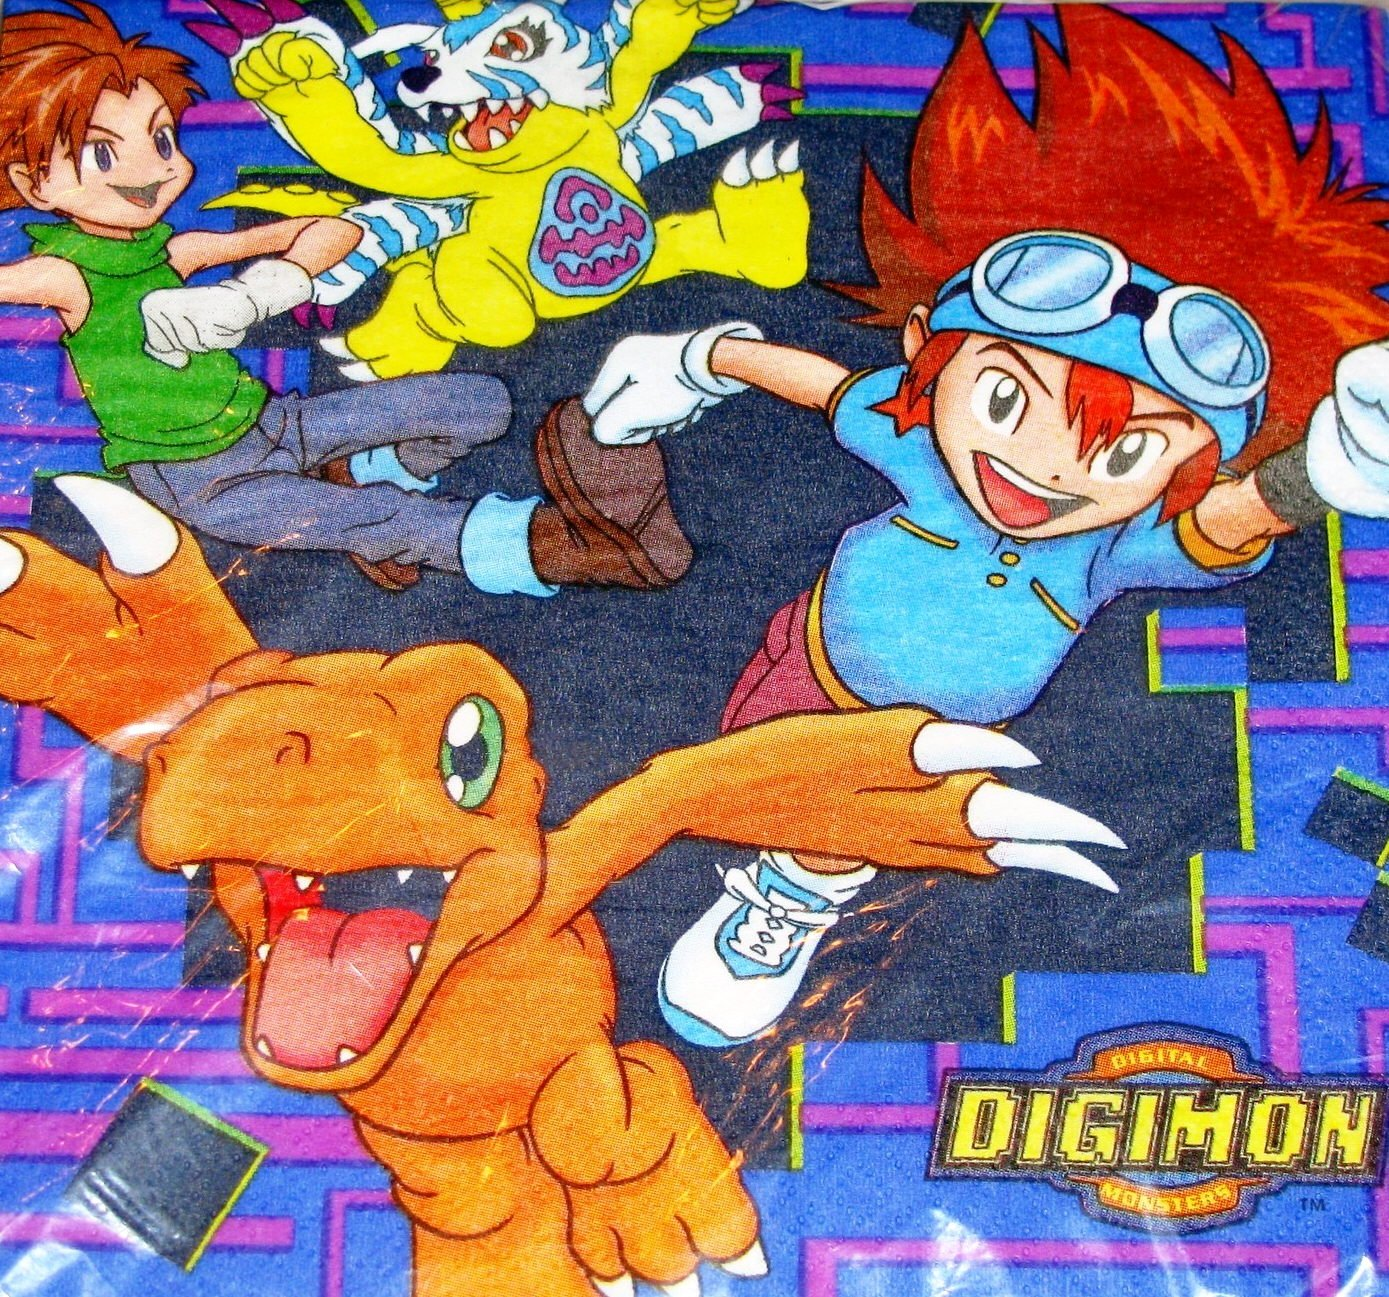 Digital Digimon Monsters Lunch Napkins (16 Count) B008CLD2OA